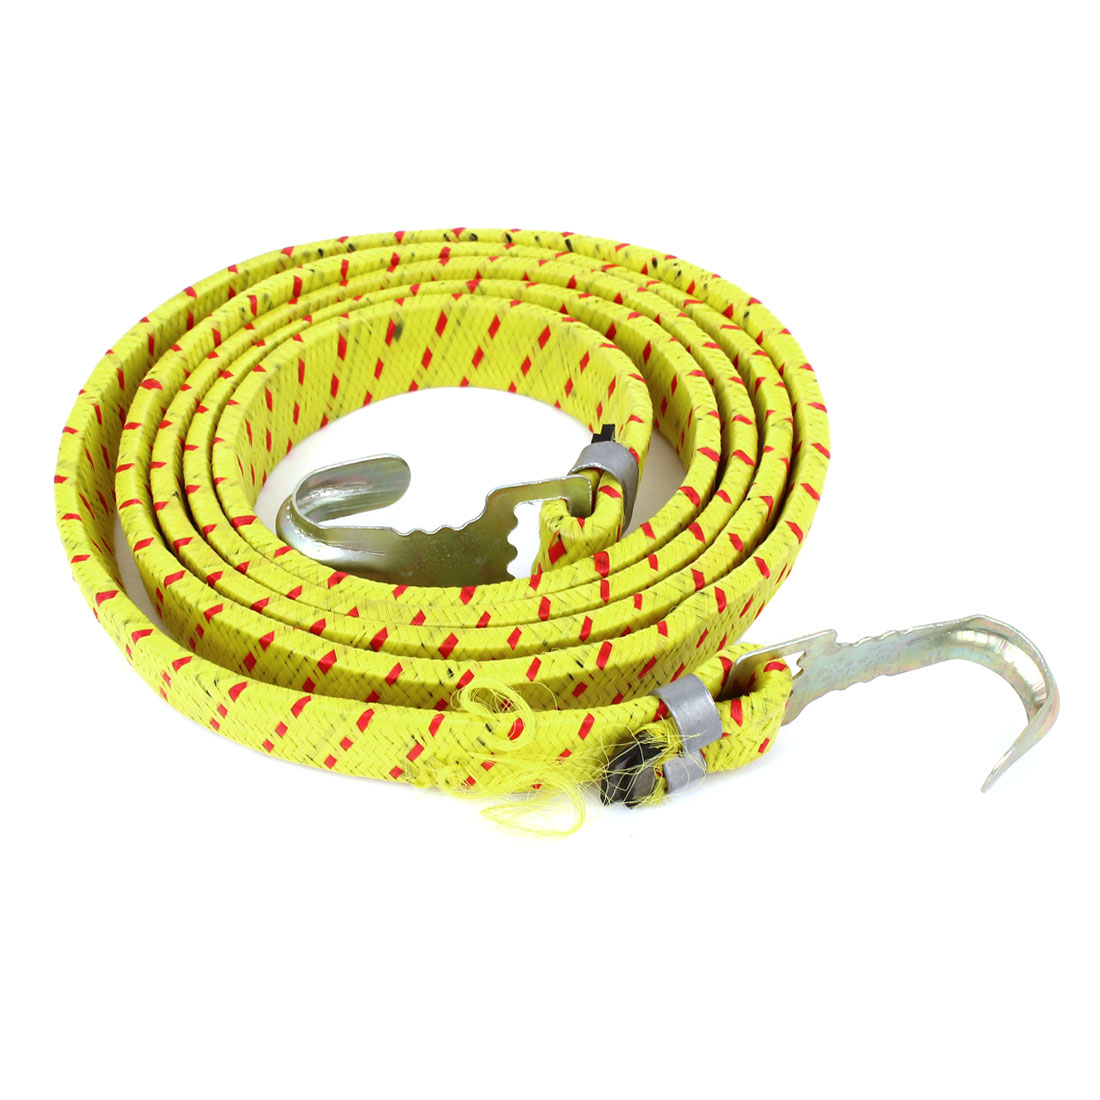 "Car Bike Metal Hook Elastic Bungee Cord Striped Luggage Rope Yellow Red 60""x0.7"""